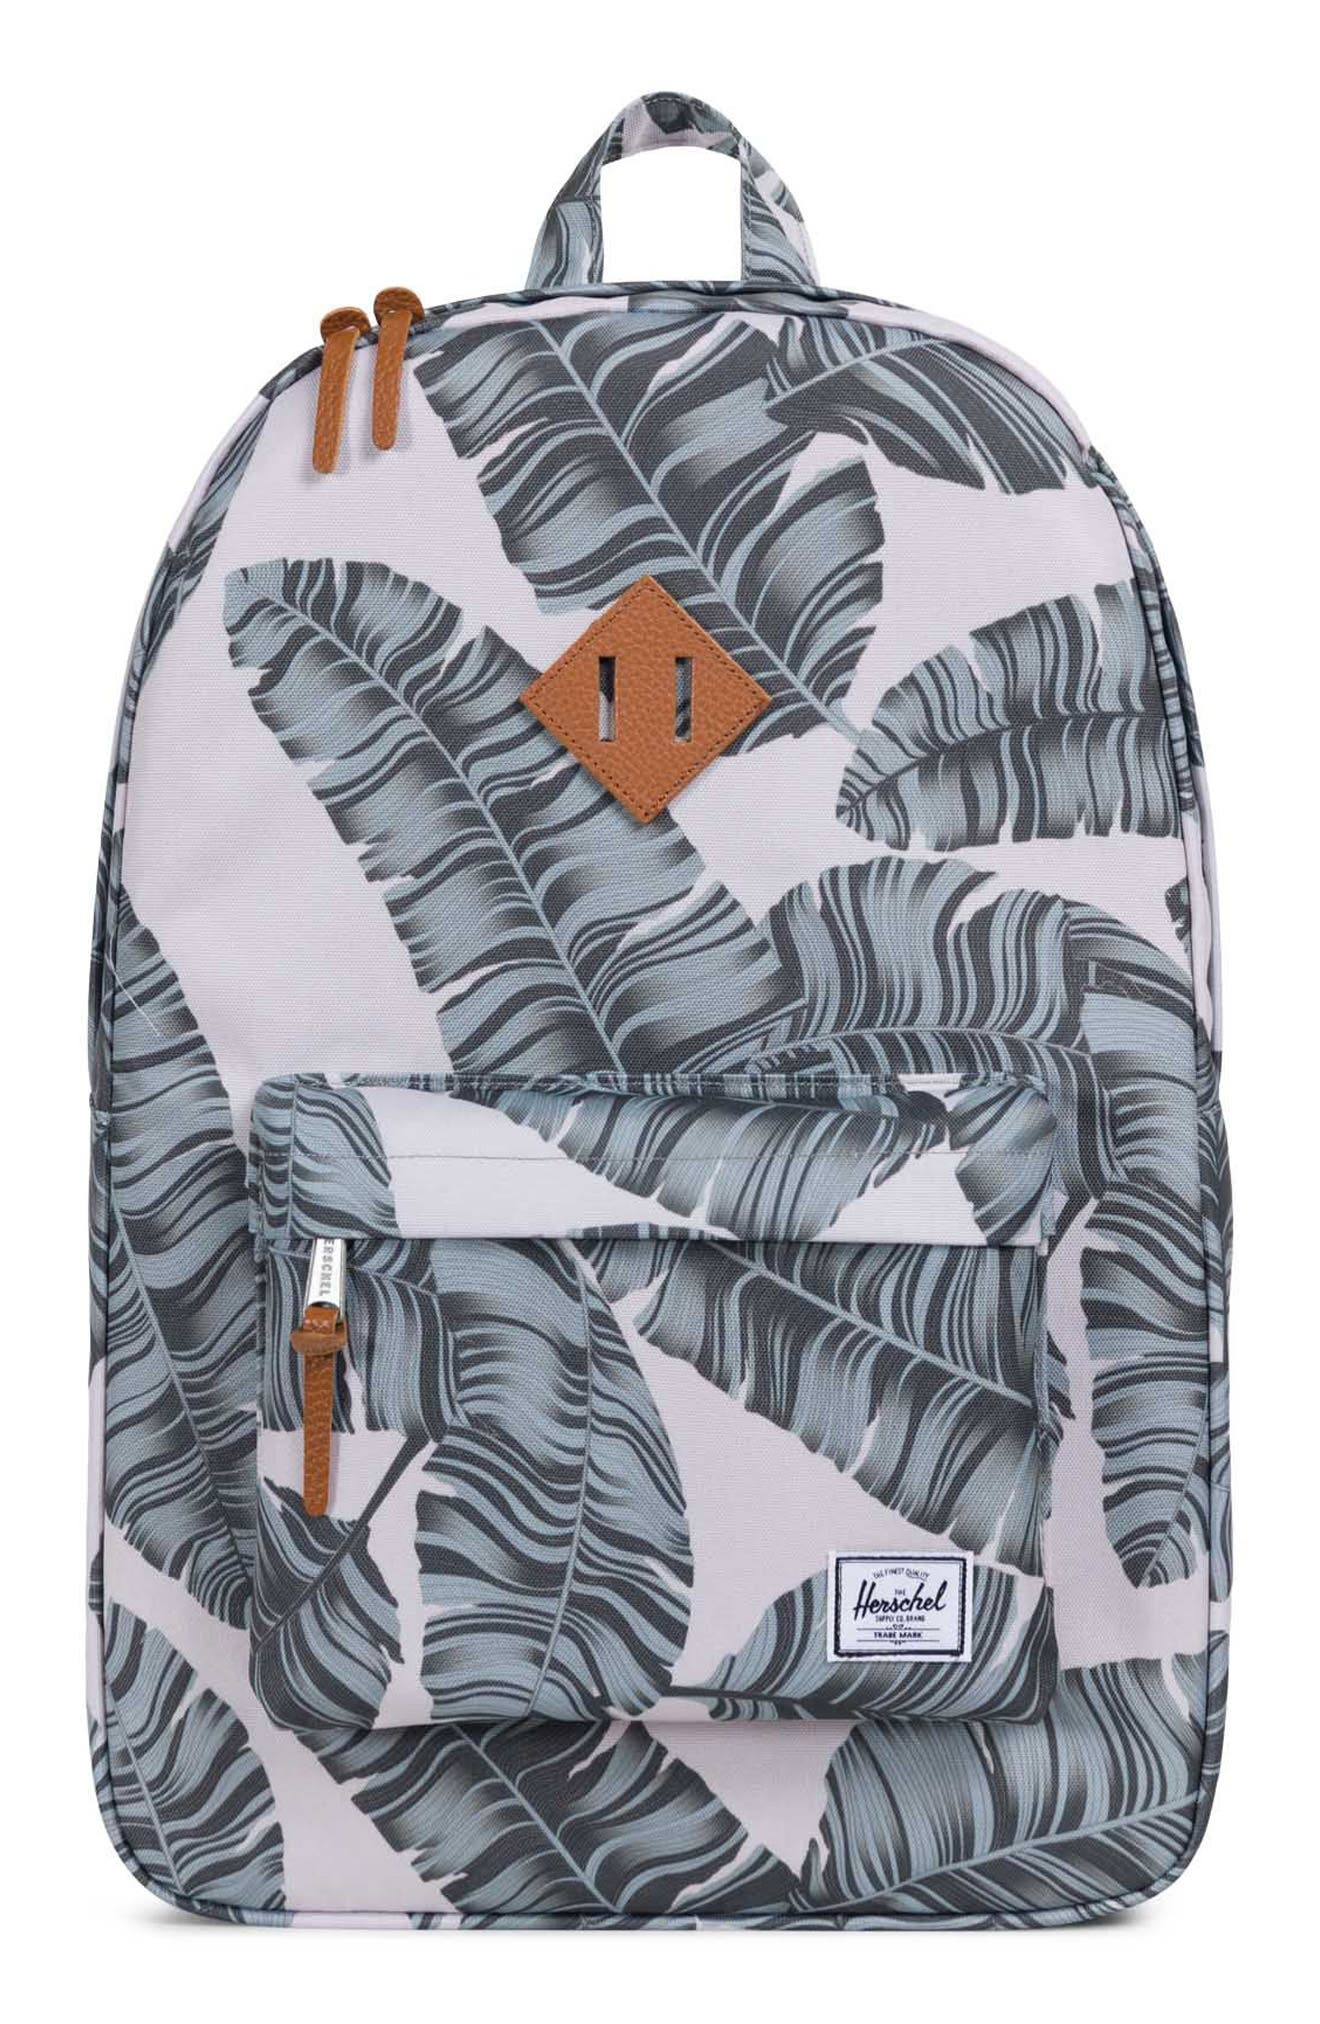 Heritage Backpack,                         Main,                         color, Silver Birch Palm/ Tan